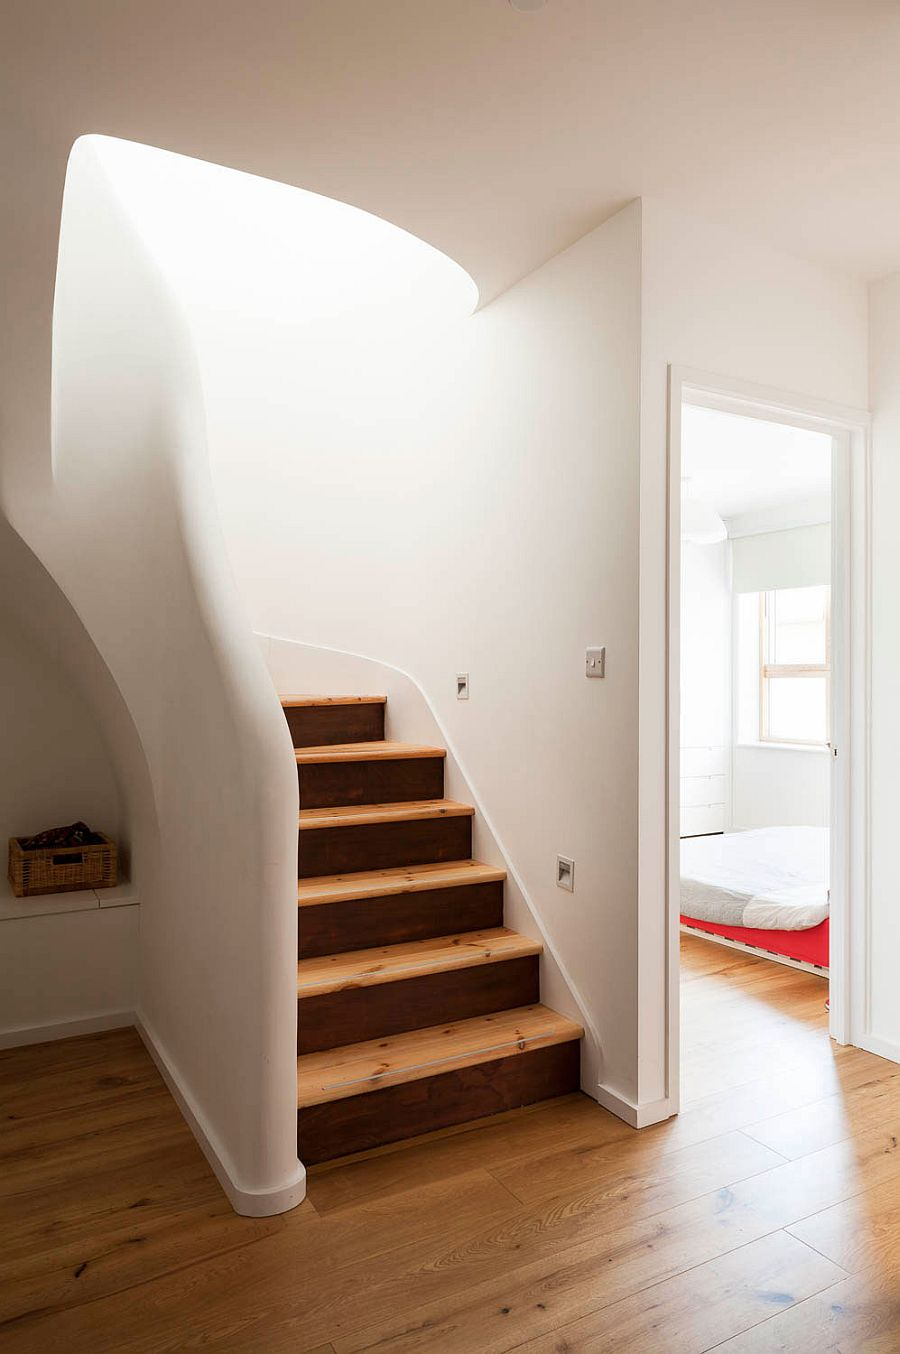 Design of the staircase and rootop terrace brings a flood of light into the lower level as well